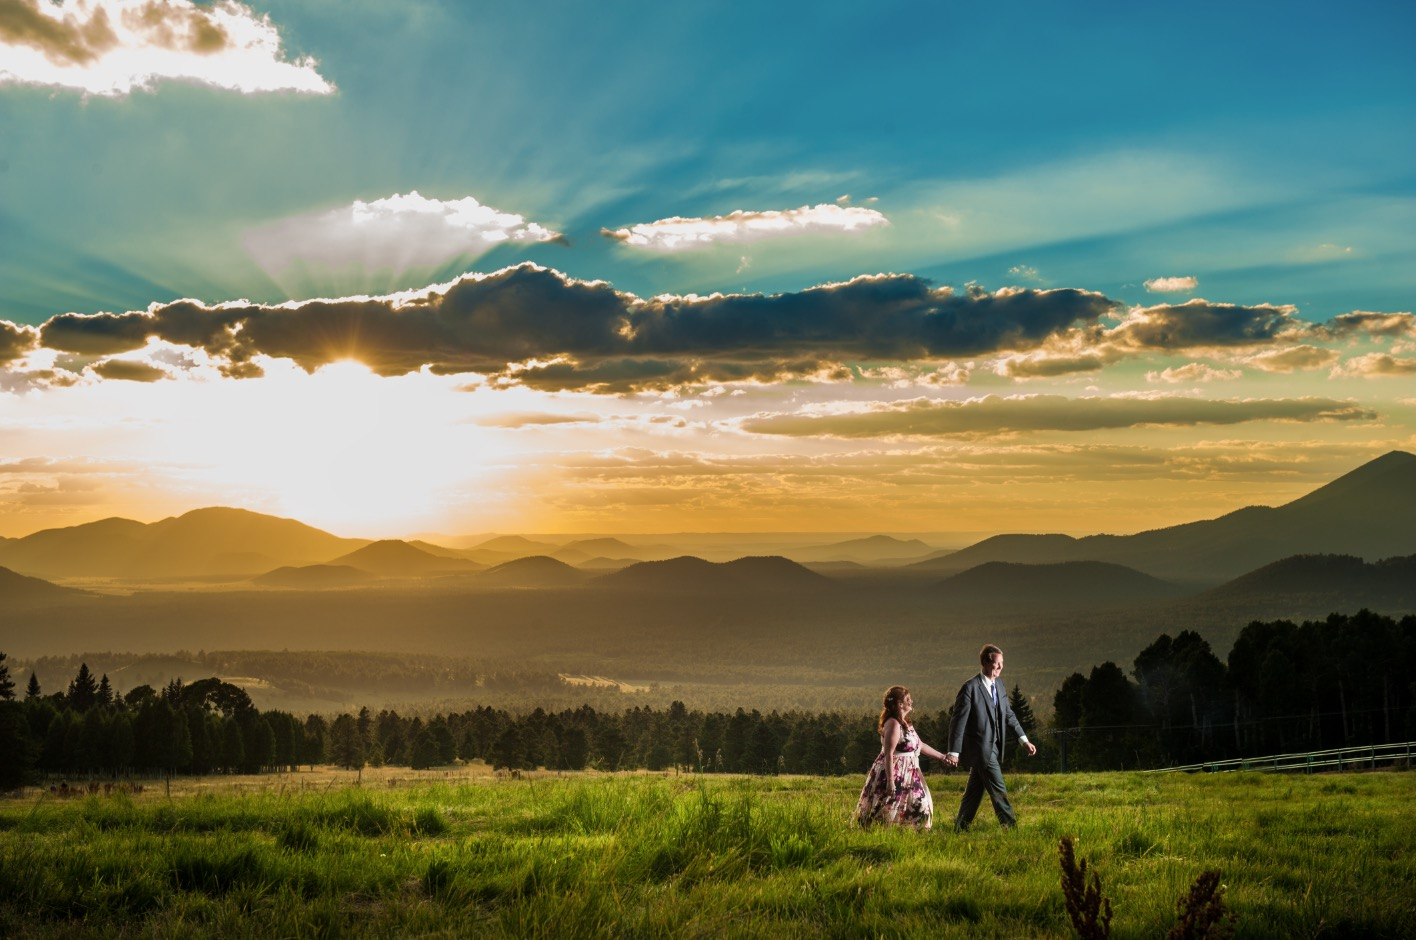 flagstaff-elopement-wedding-photo-2016ther2studio